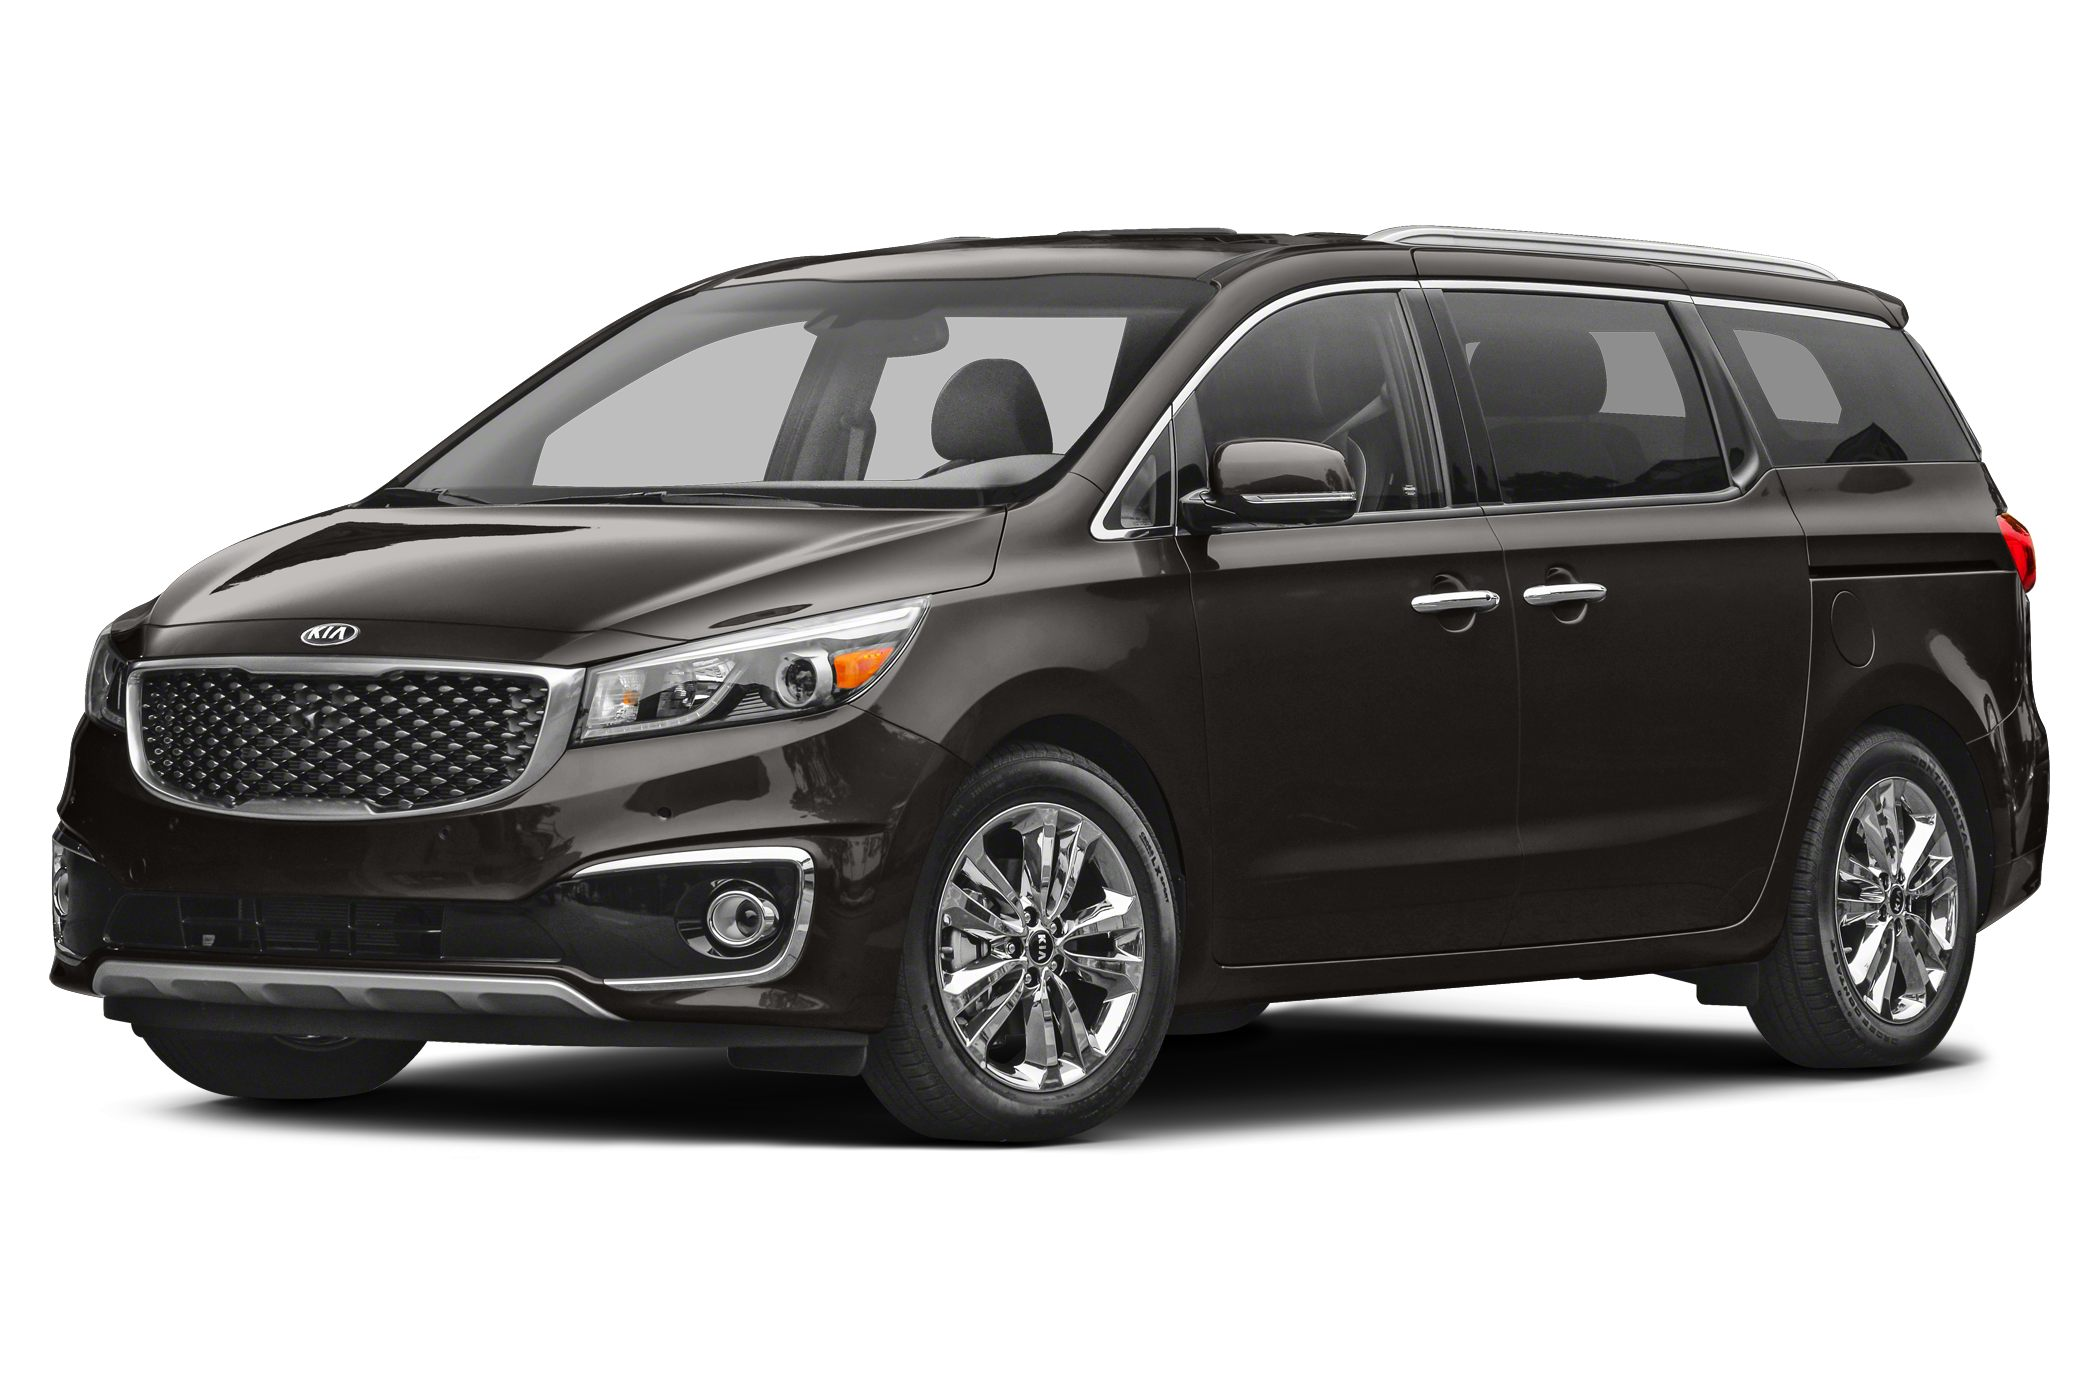 2015 Kia Sedona SX-L Minivan for sale in Milwaukee for $43,790 with 9 miles.